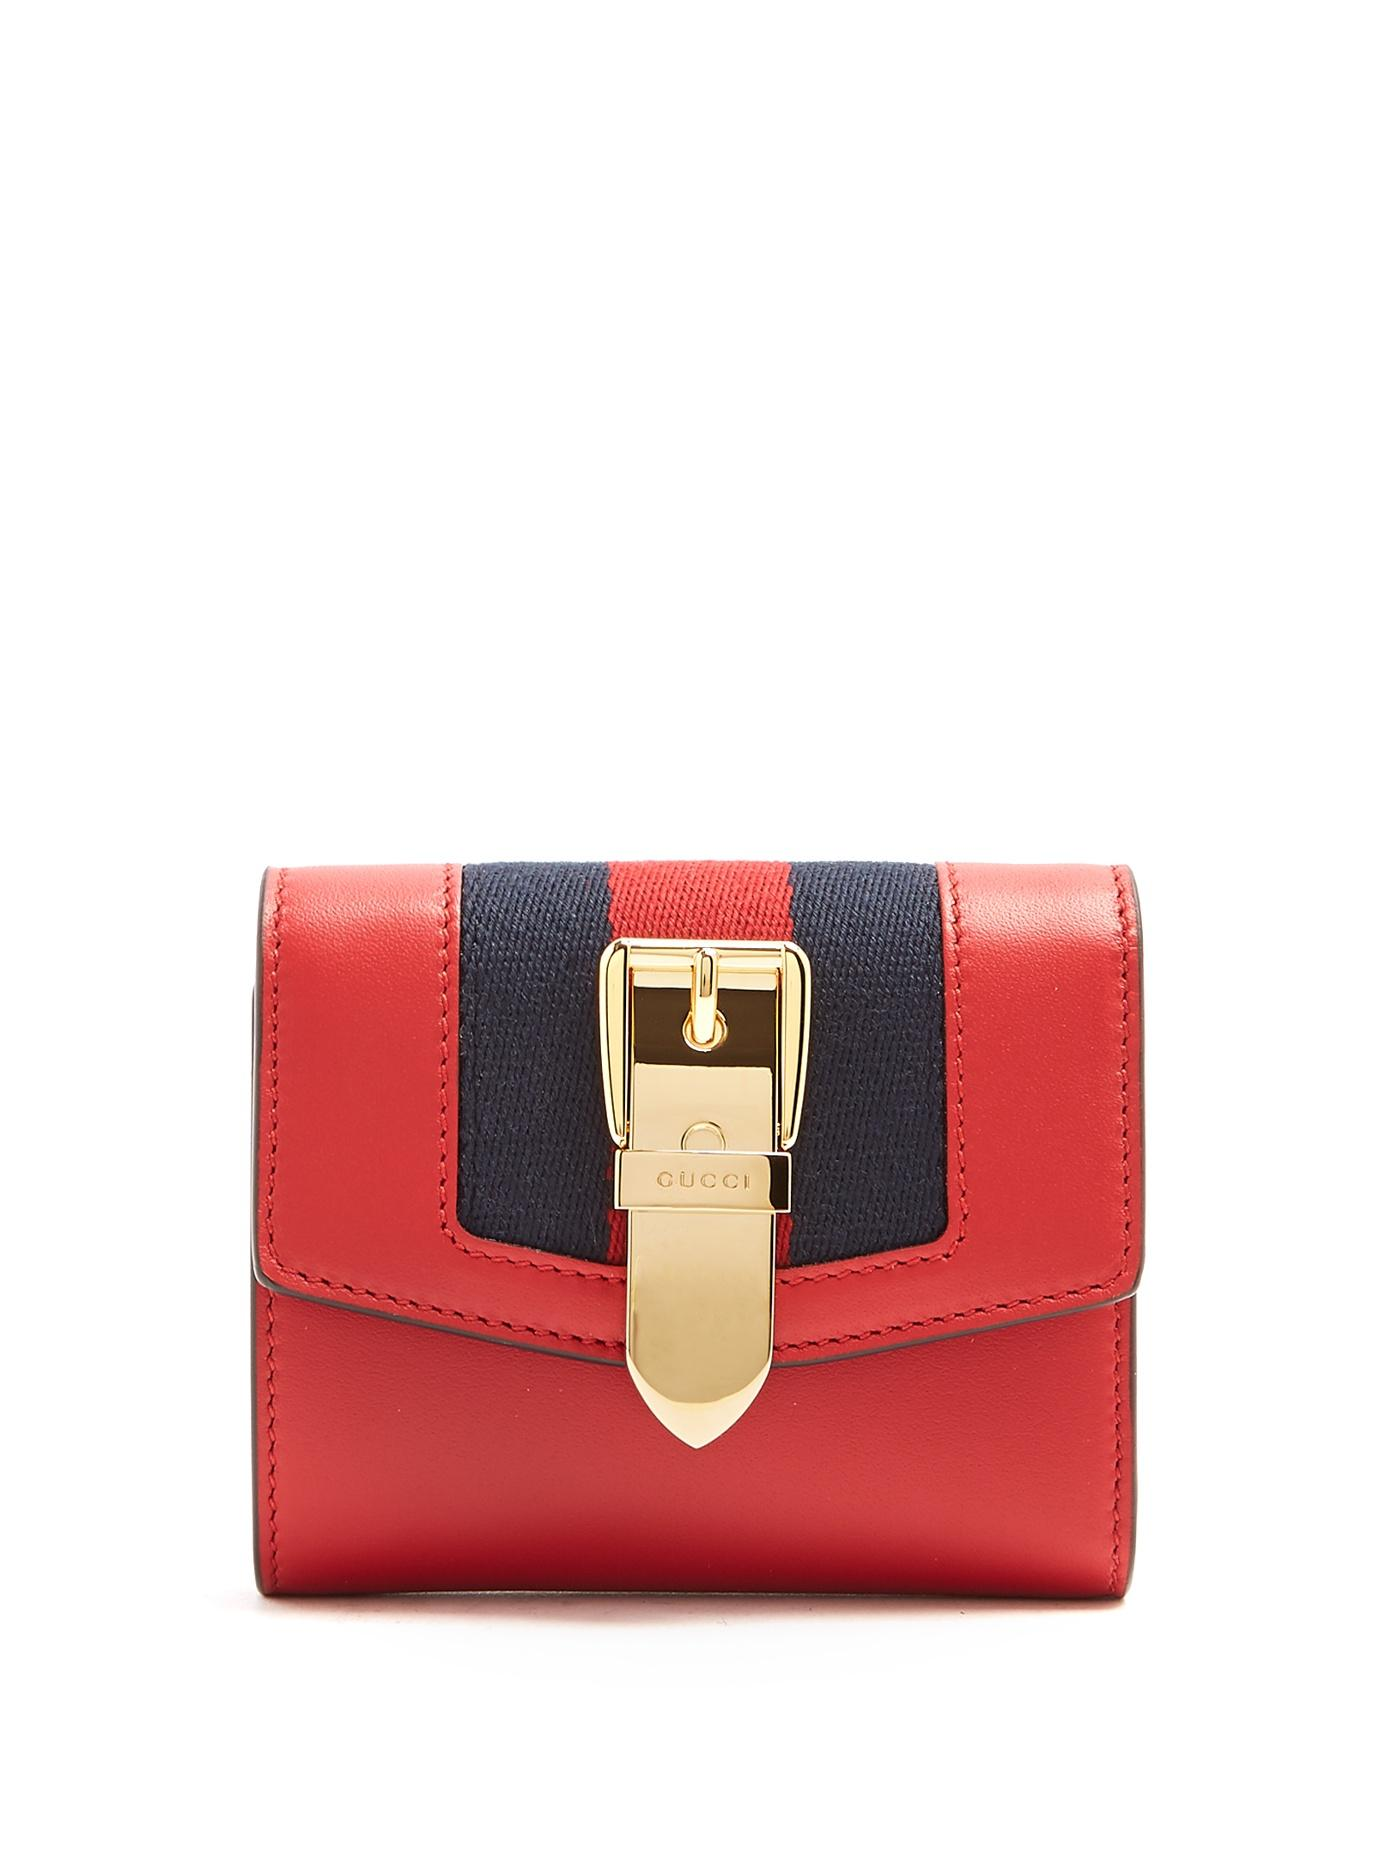 9544f0294d8522 Gucci Sylvie Canvas-Trimmed Leather Wallet In Red | ModeSens